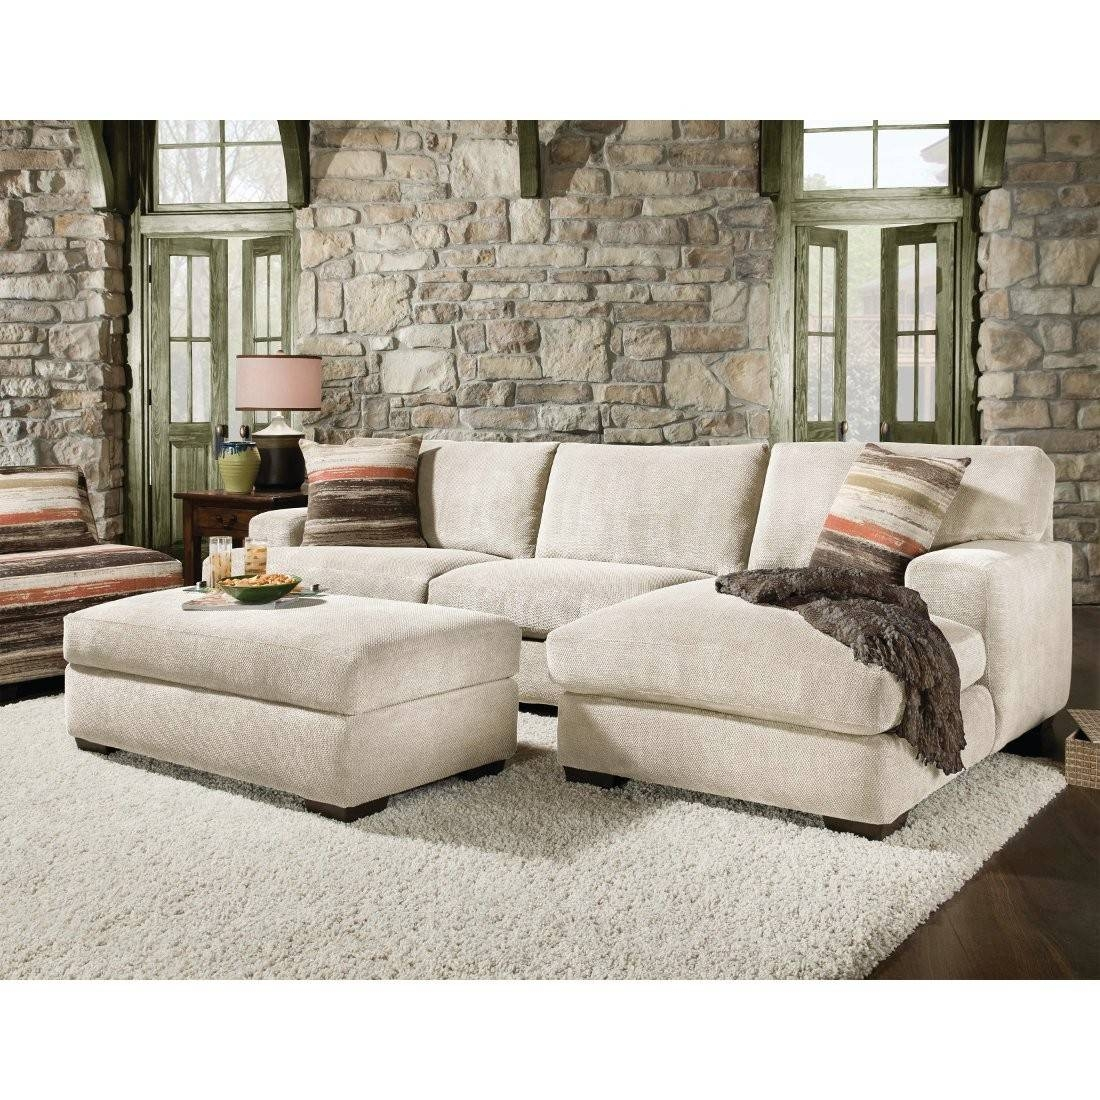 Cozy Sectional Sofa With Chaise And Ottoman 29 About Remodel Down For Filled